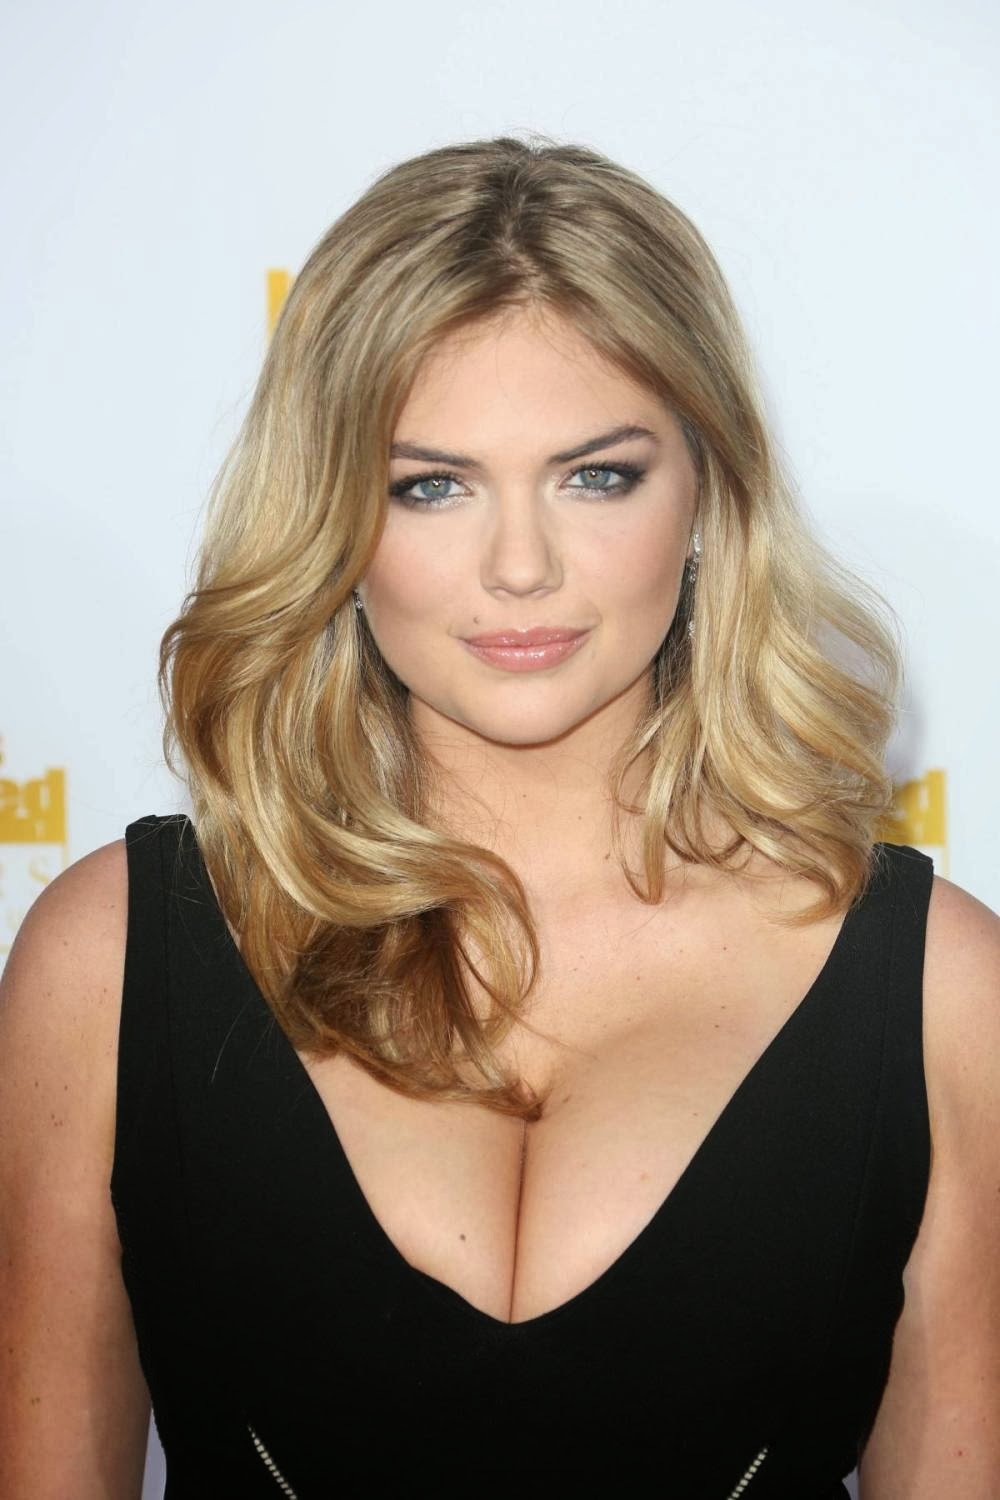 Kate Upton Big Boobs Cleavage in Sports Illustrated